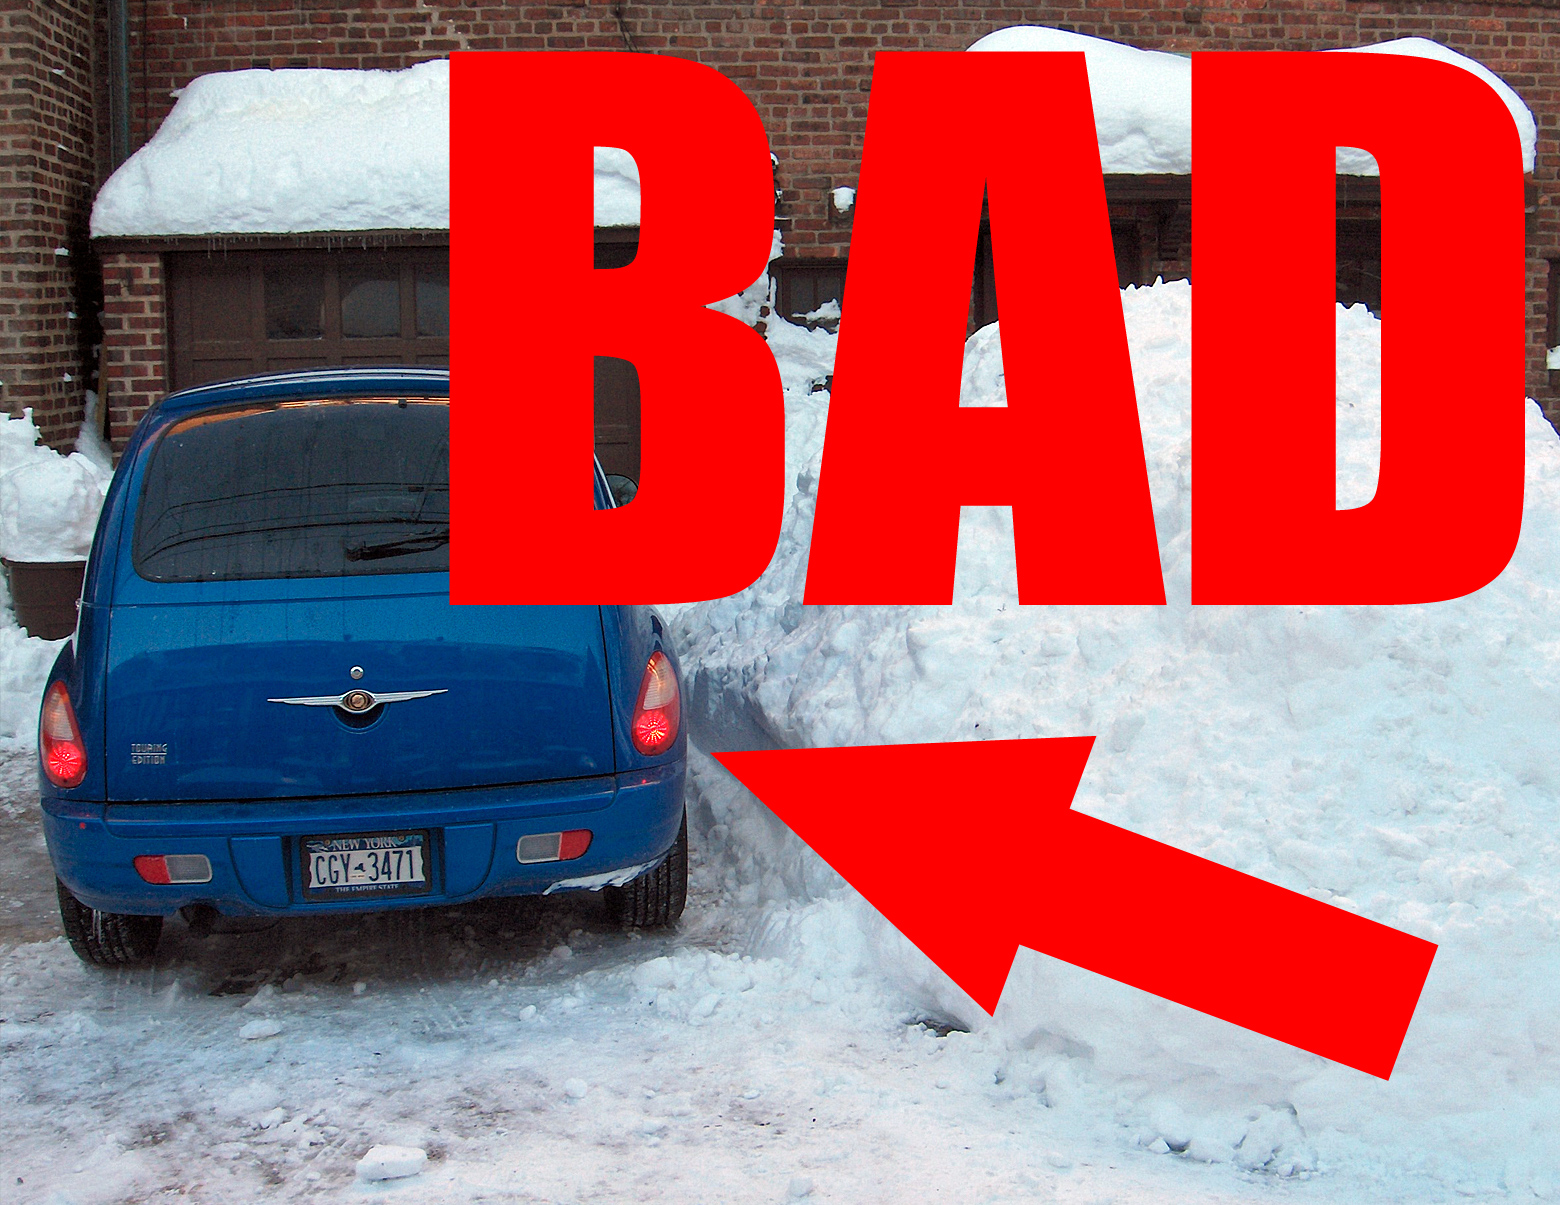 Cop tickets Michigan man for warming up his car in the driveway – BGR